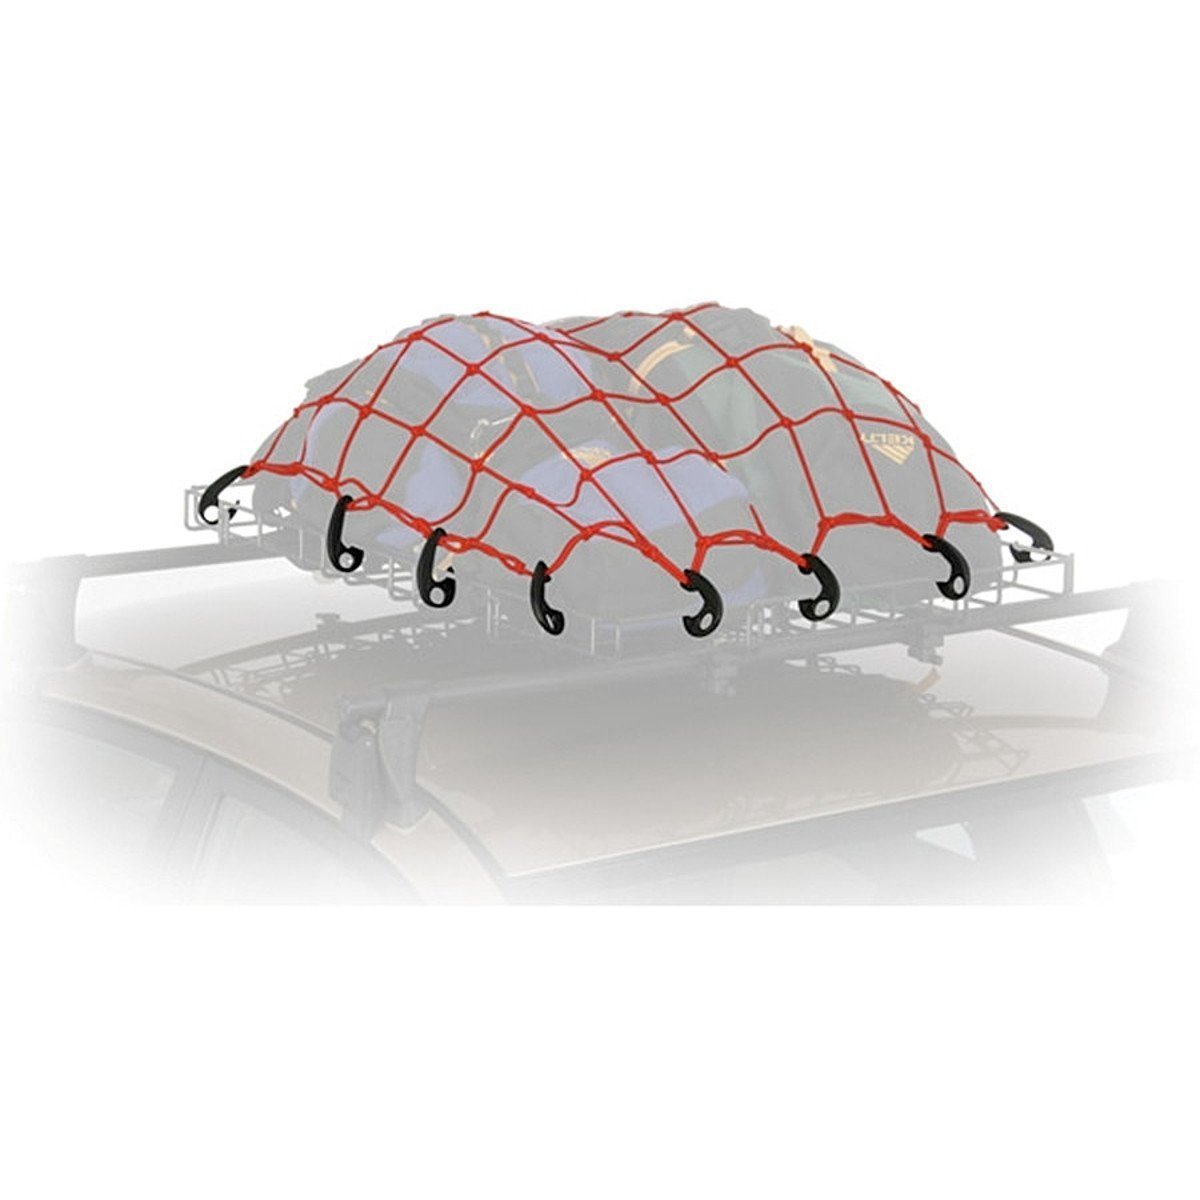 Roof Basket Net - Volvo (now-cargo-net)